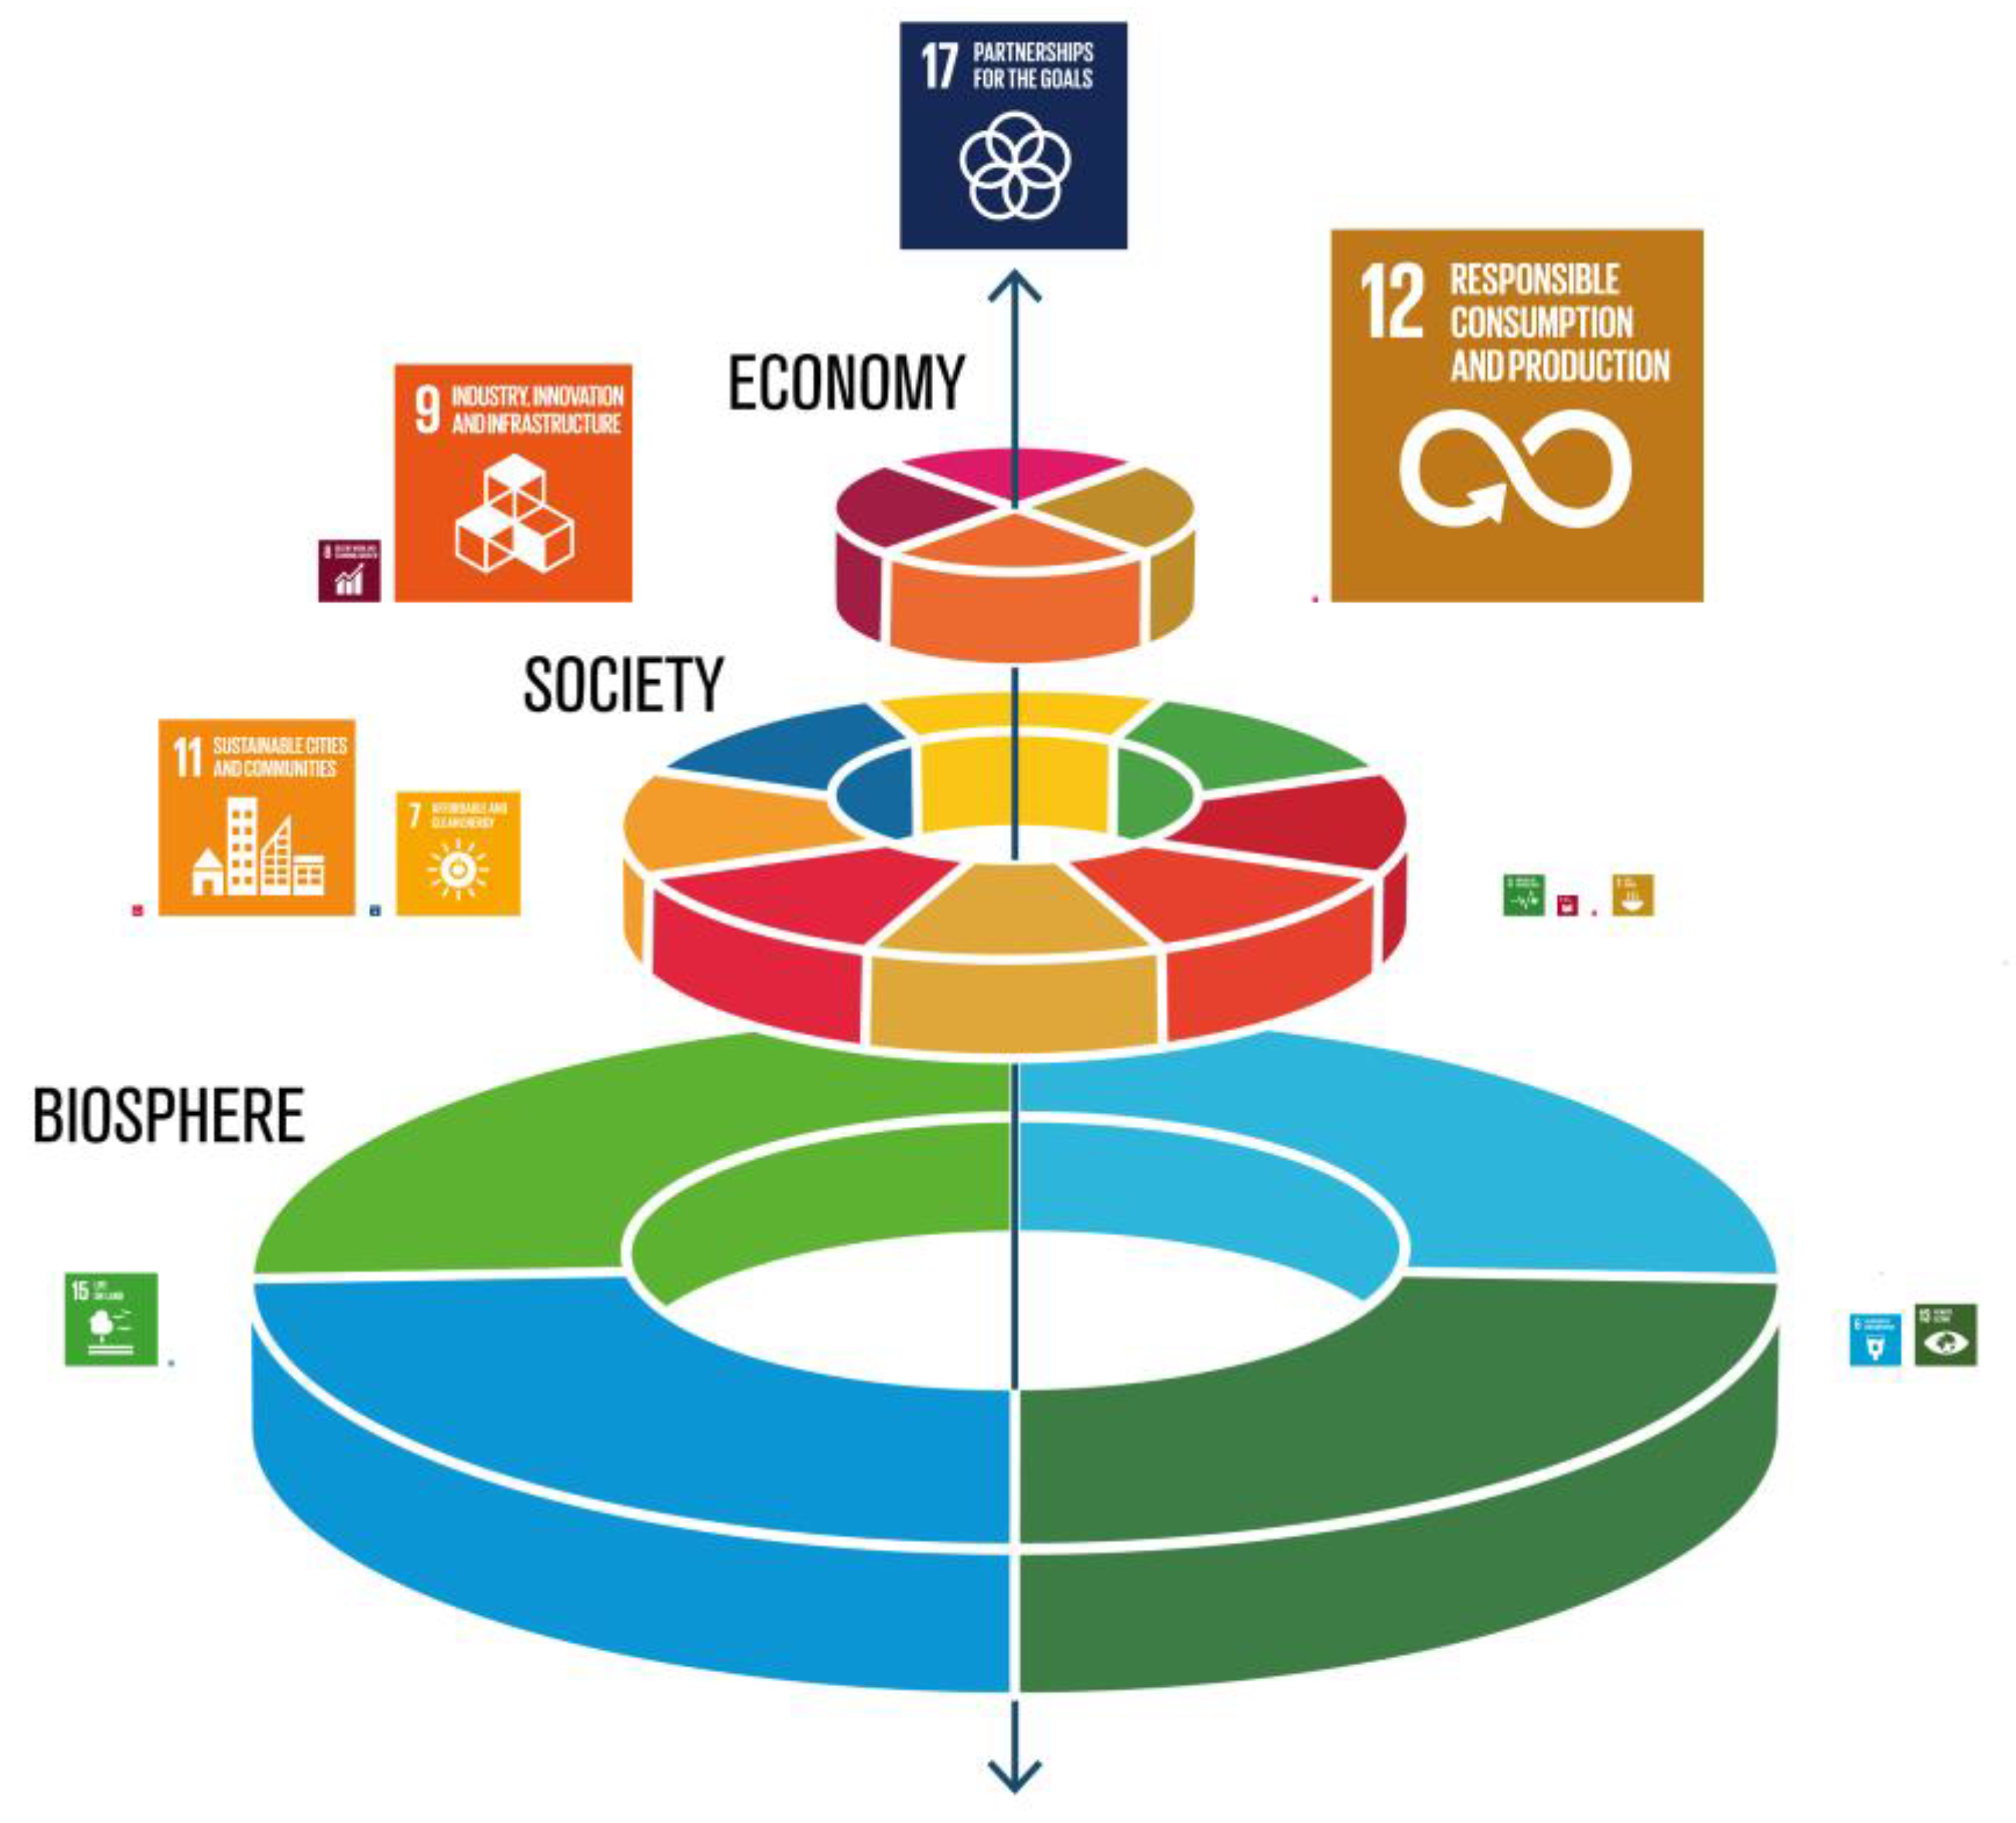 Systems Free Full Text Circular Economy For Food A Systemic Interpretation Of 40 Case Histories In The Food System In Their Relationships With Sdgs Html